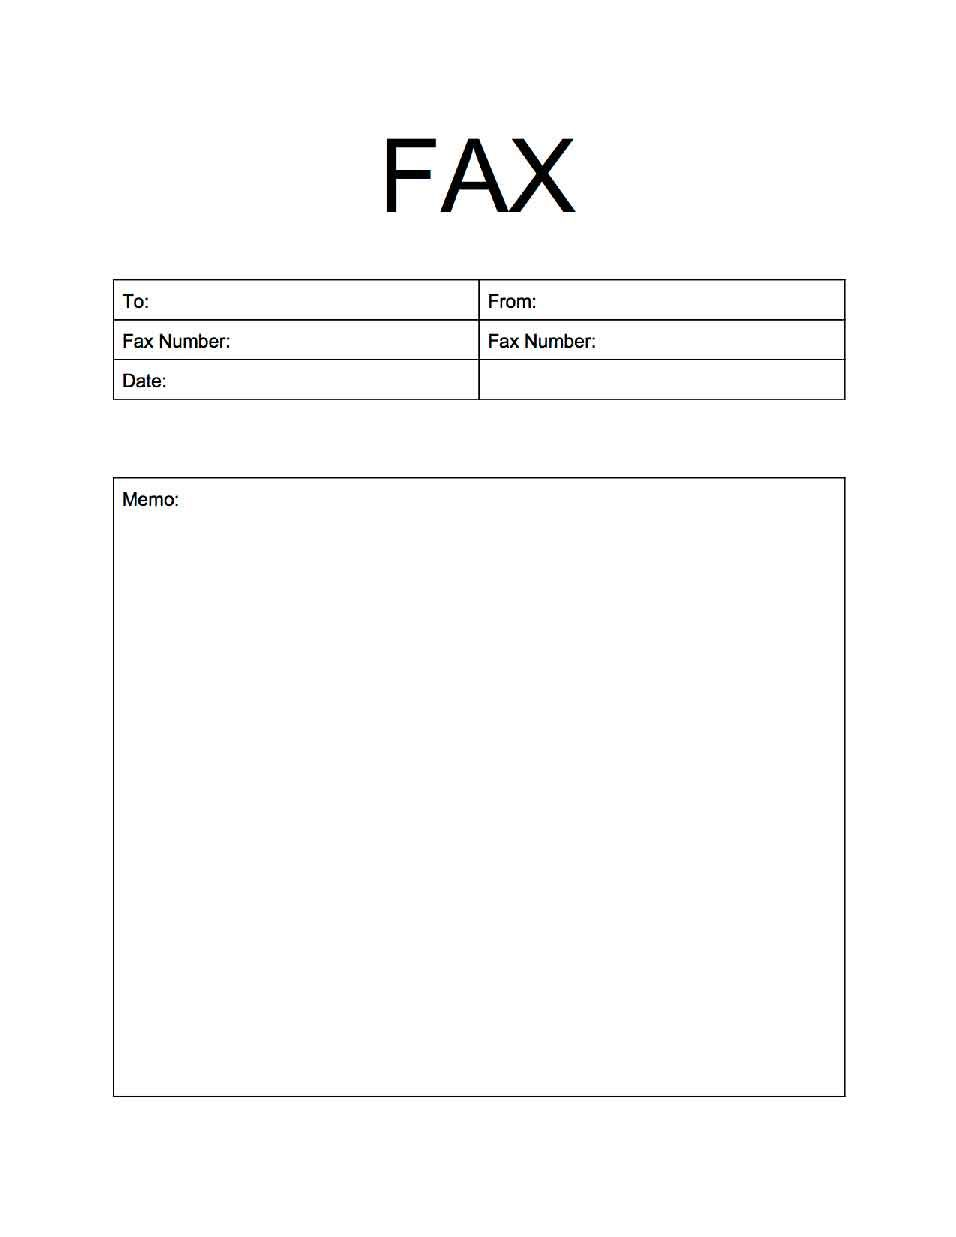 Pin by ifaxcoversheet on popularfaxcoversheets – Fax Cover Sheets Template